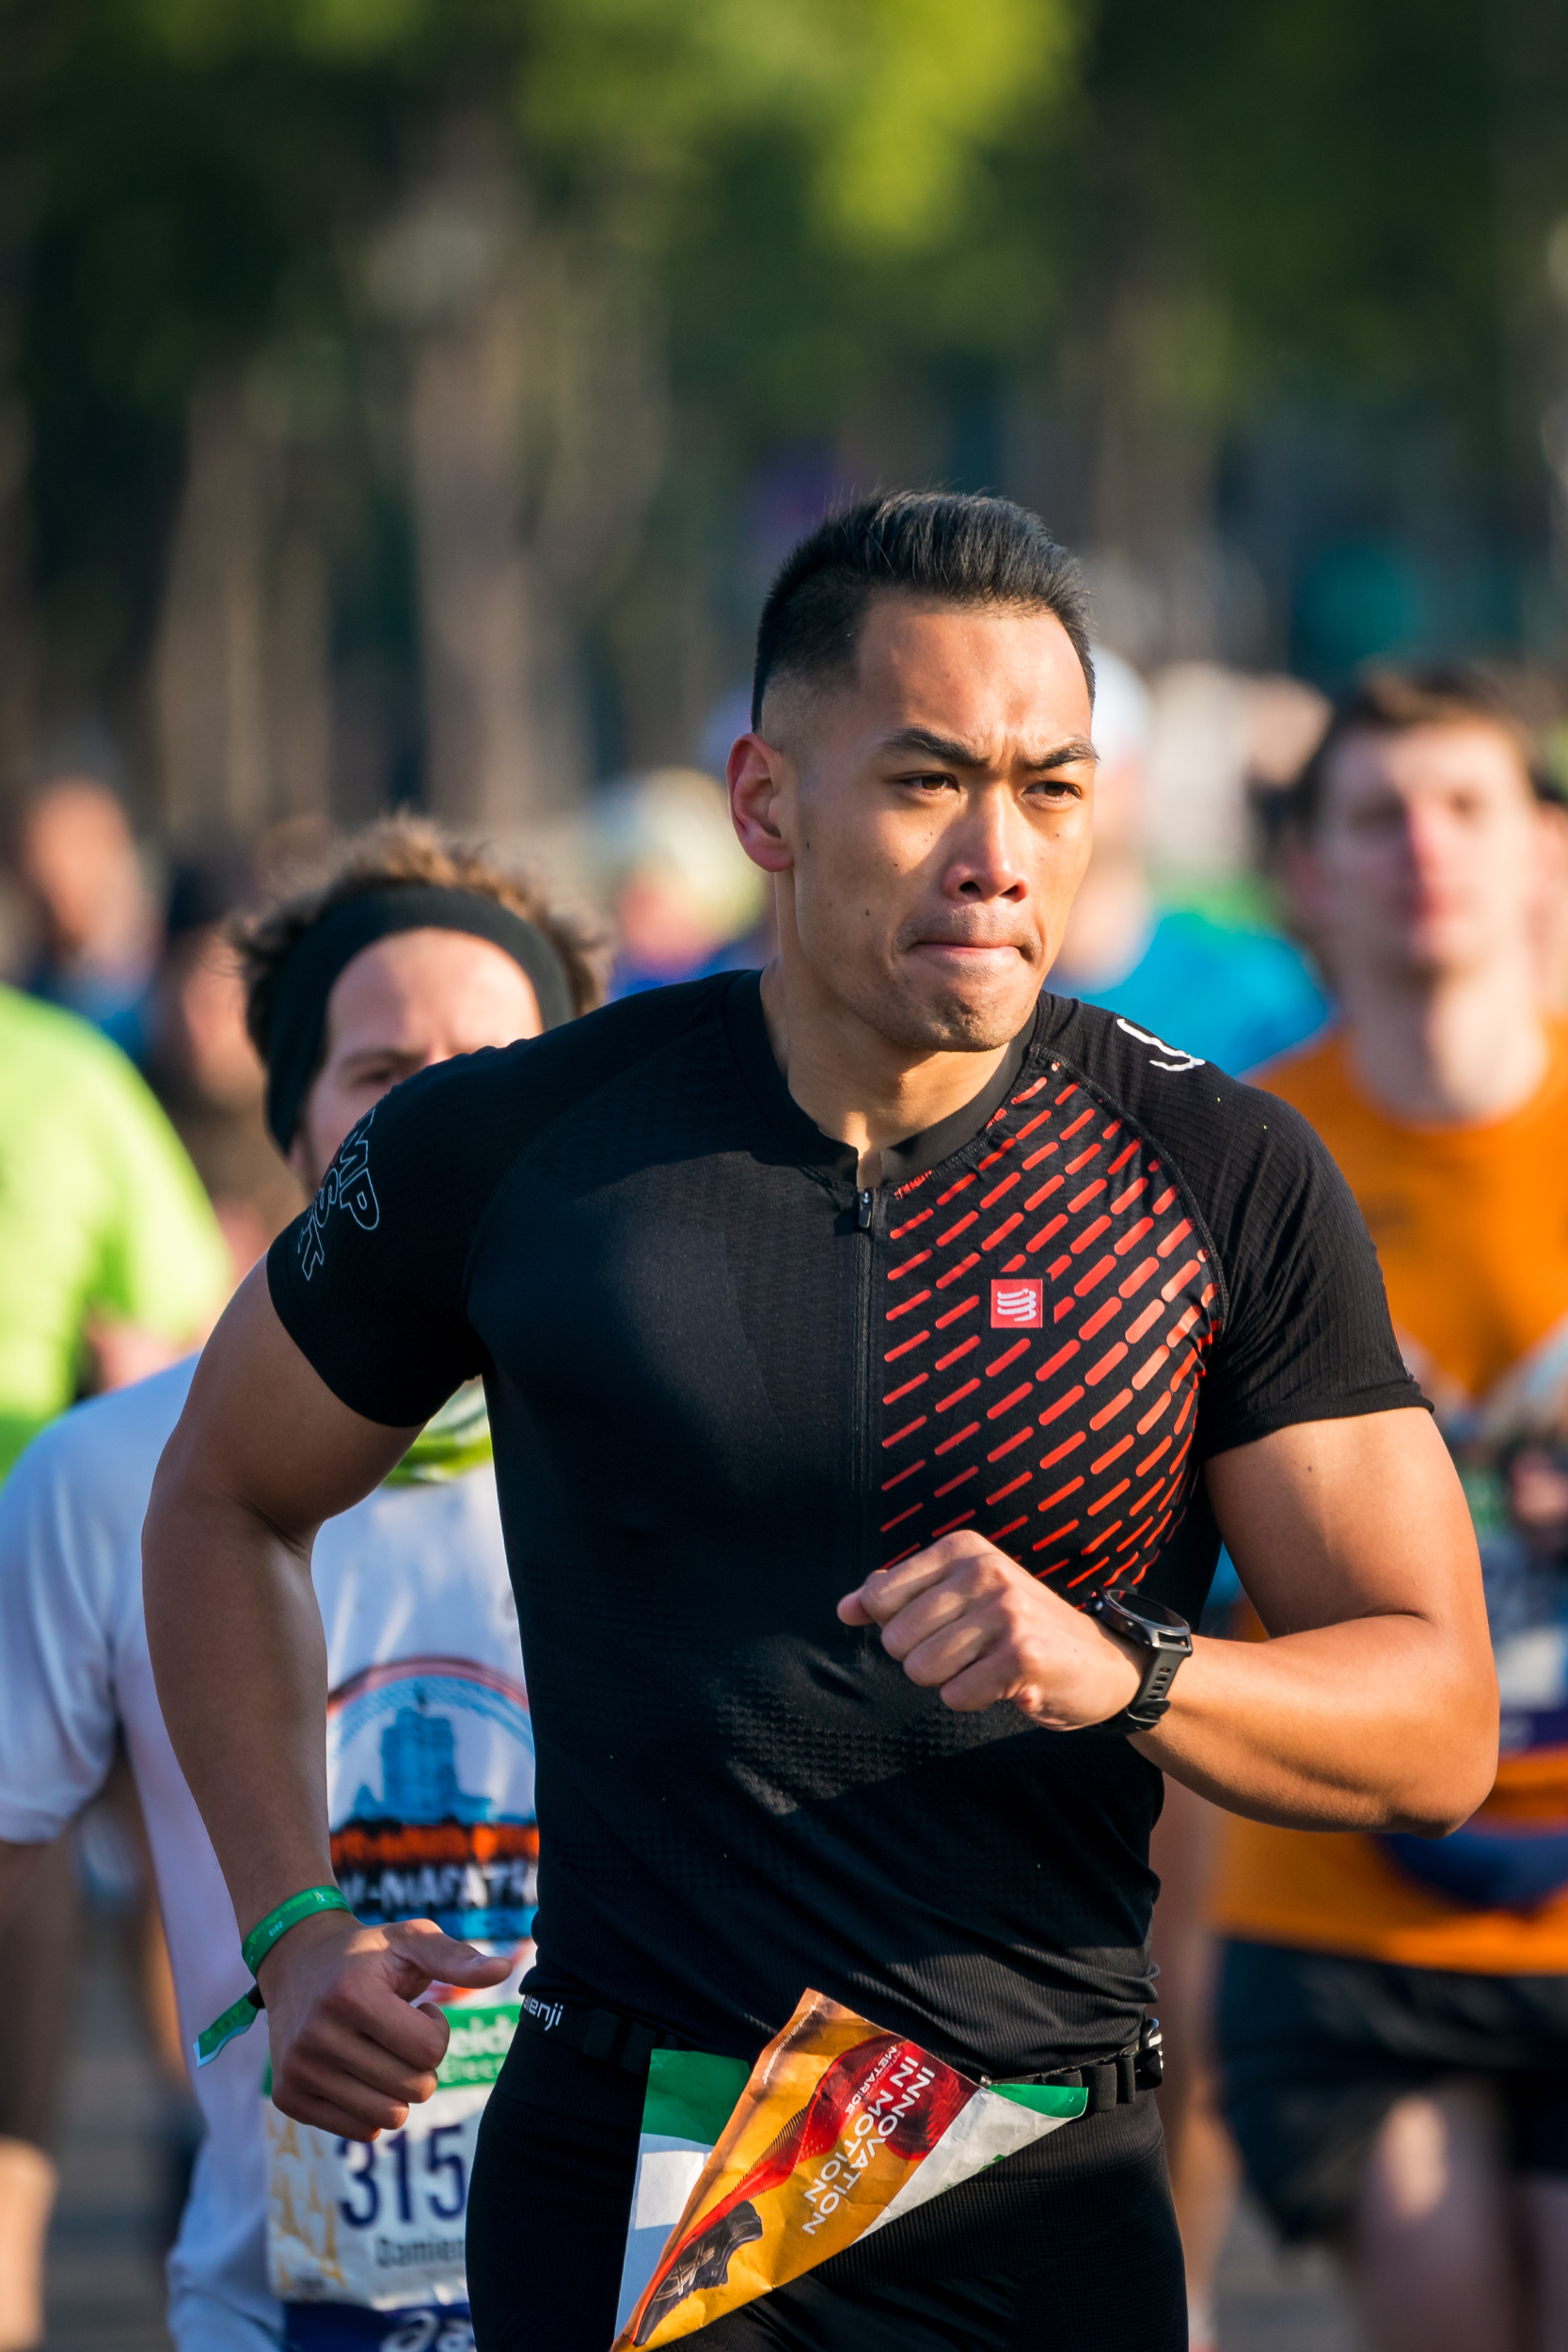 BMW_Marathon Paris 2019_Florian Leger_SHARE & DARE_HD_ N°-69.jpg